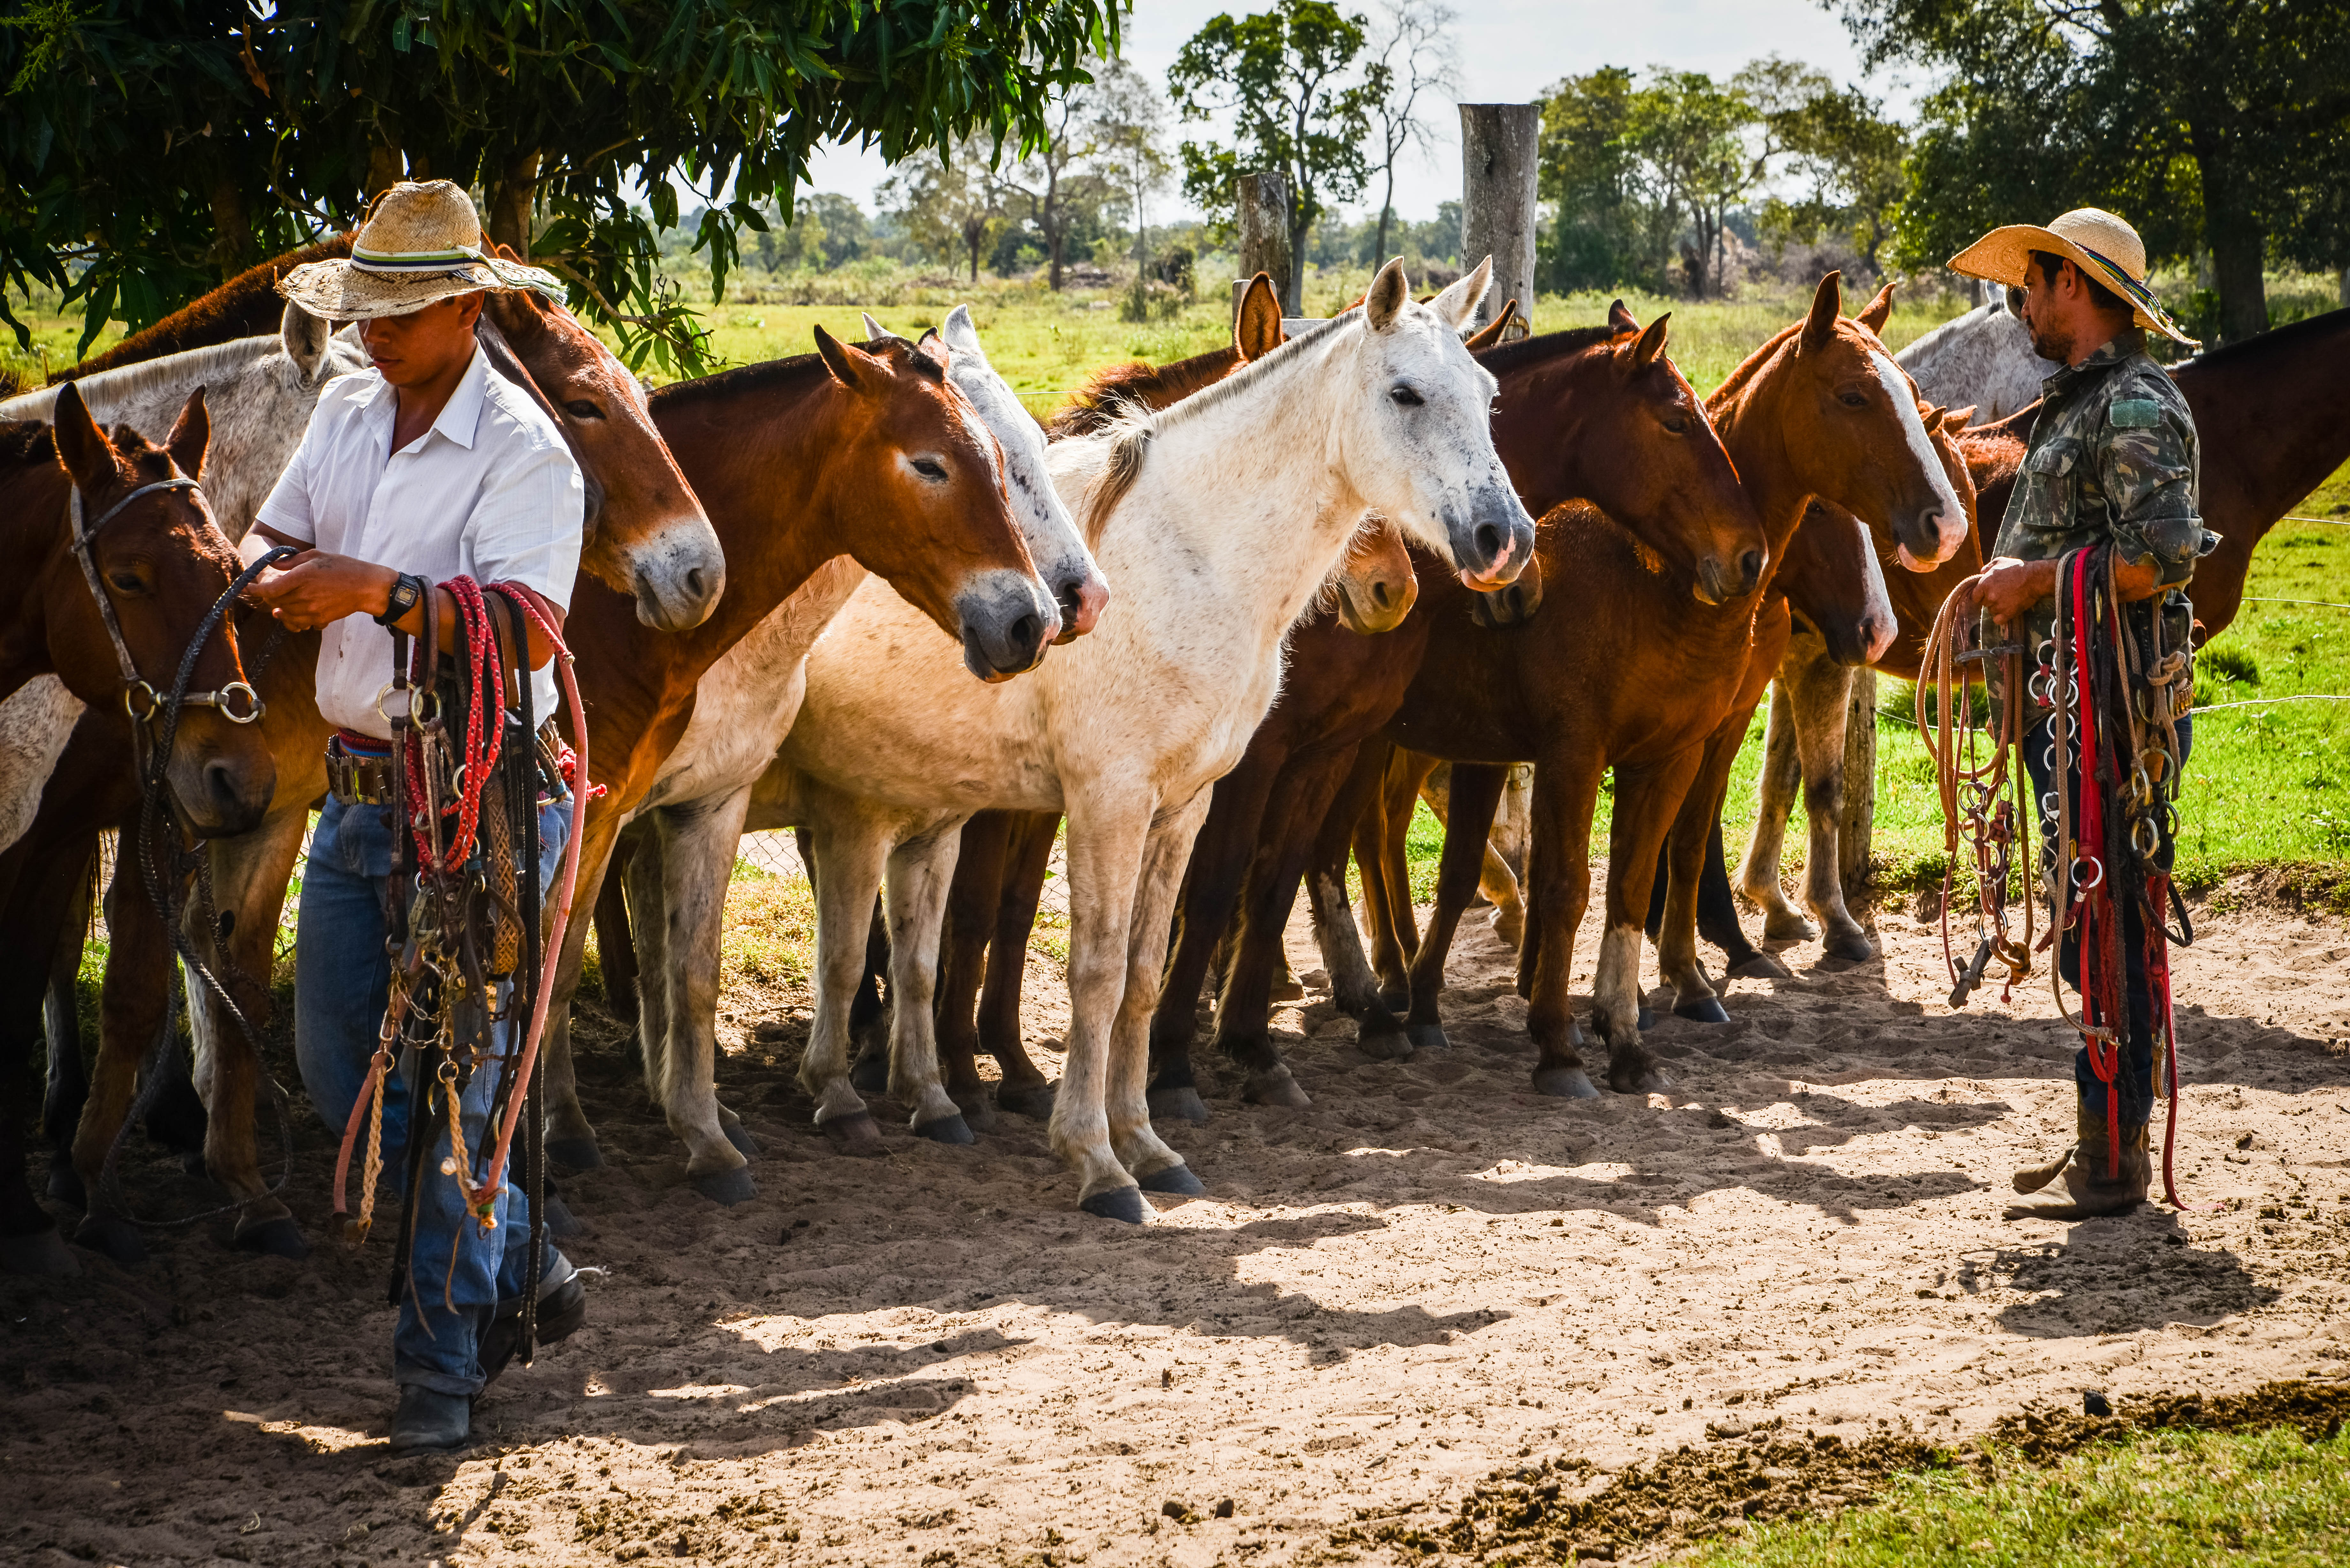 2.1 - Horses and Mules lining up in the morning